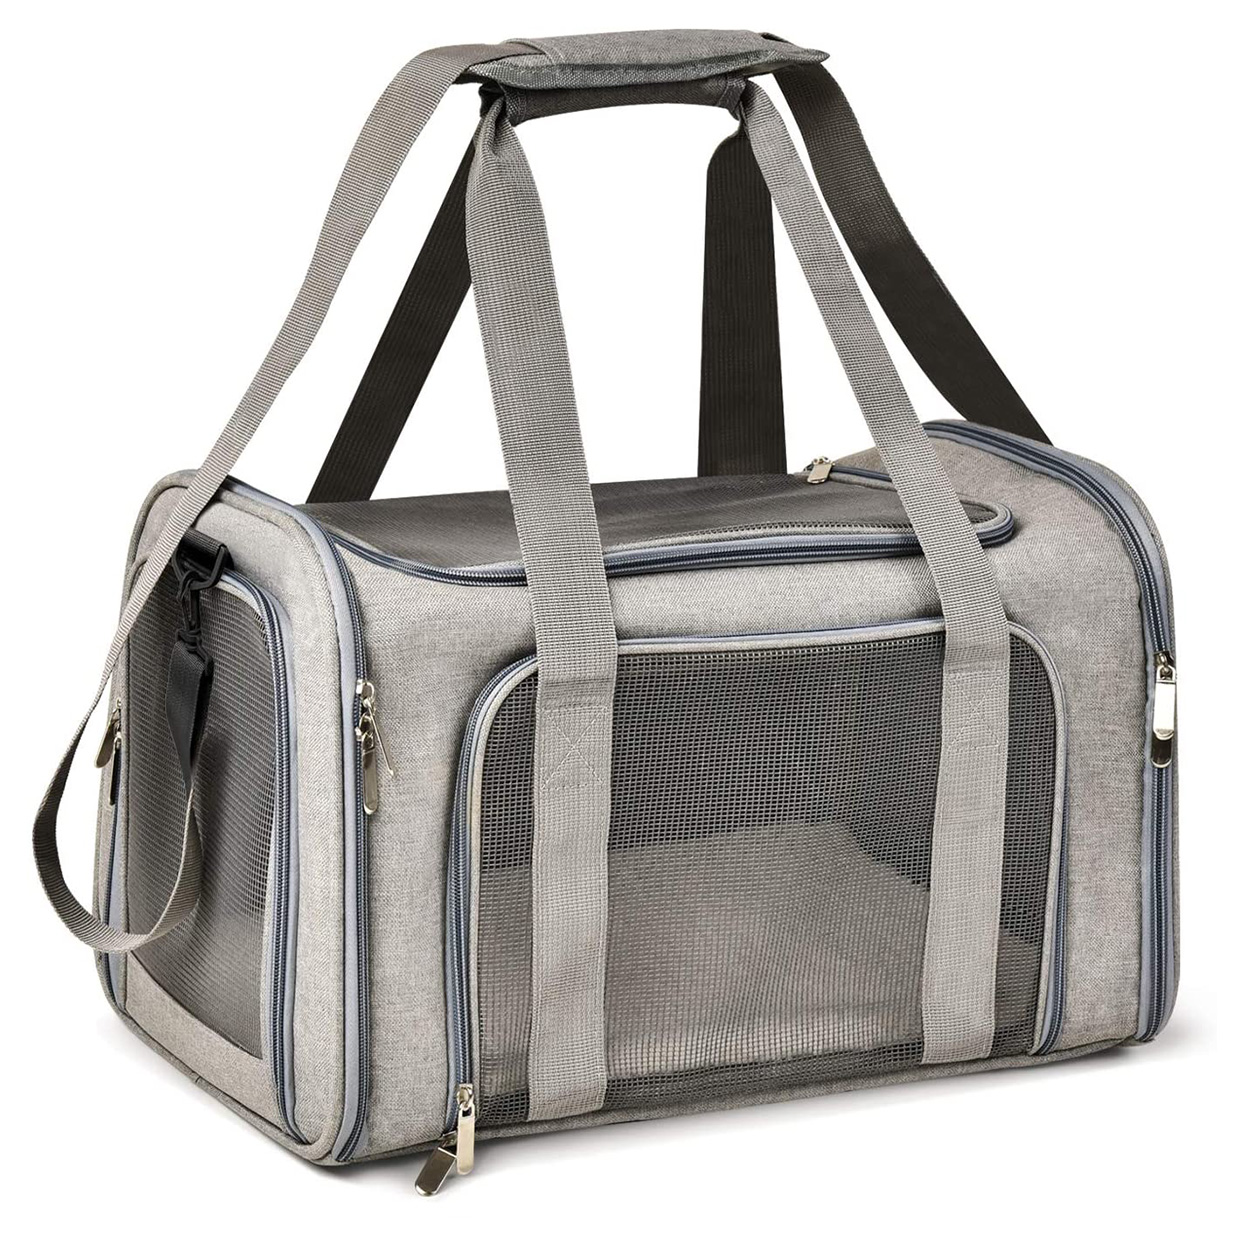 Henkelion Cat Carriers Dog Carrier Pet Carrier on a white background